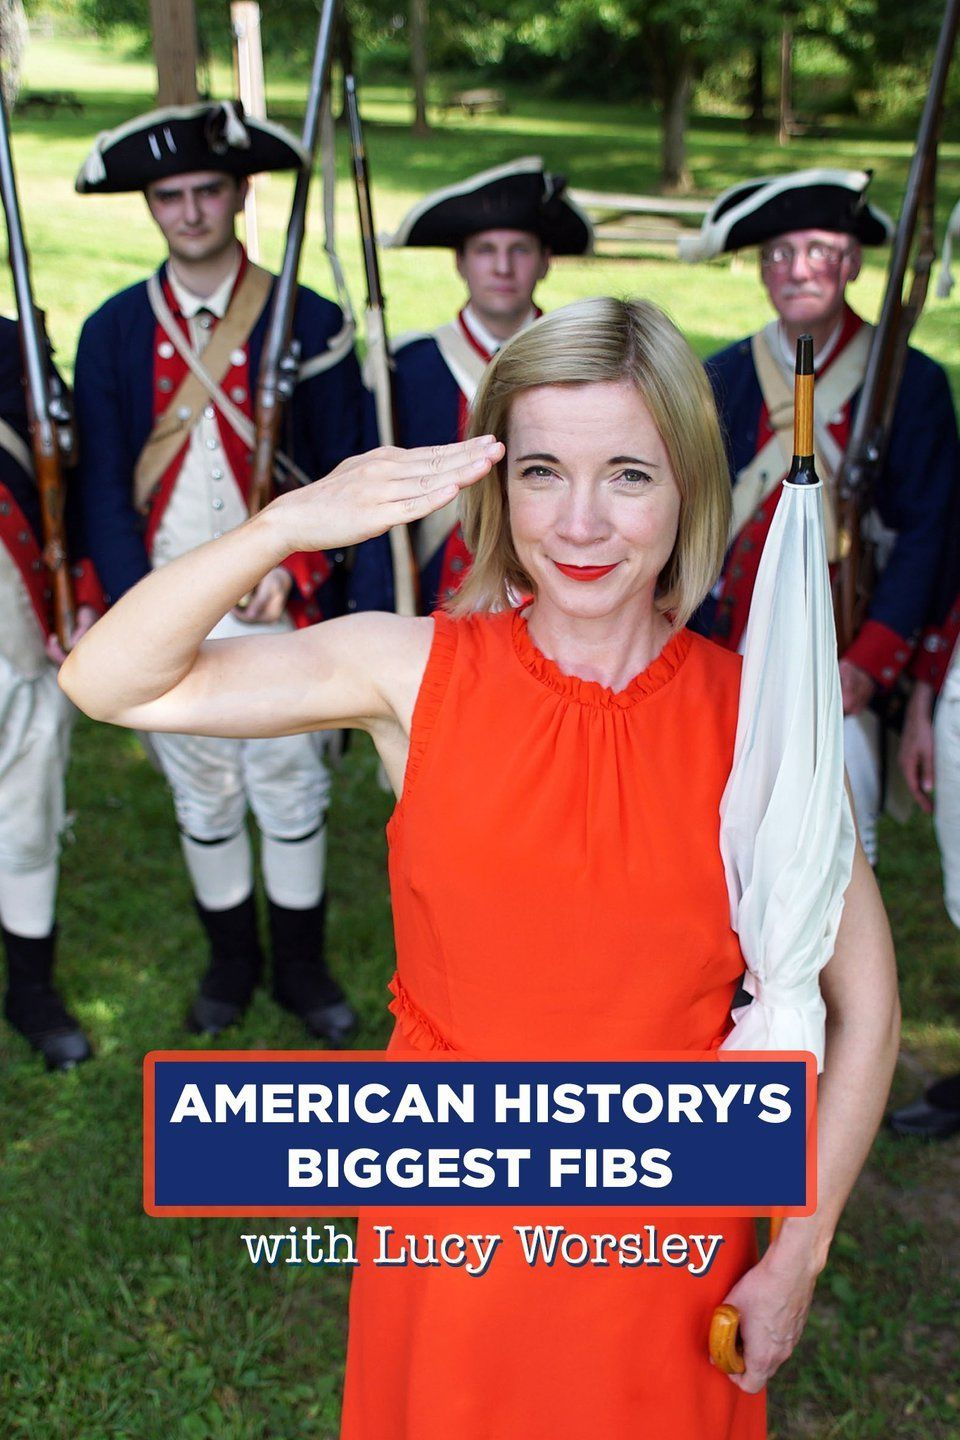 American History's Biggest Fibs with Lucy Worsley ne zaman